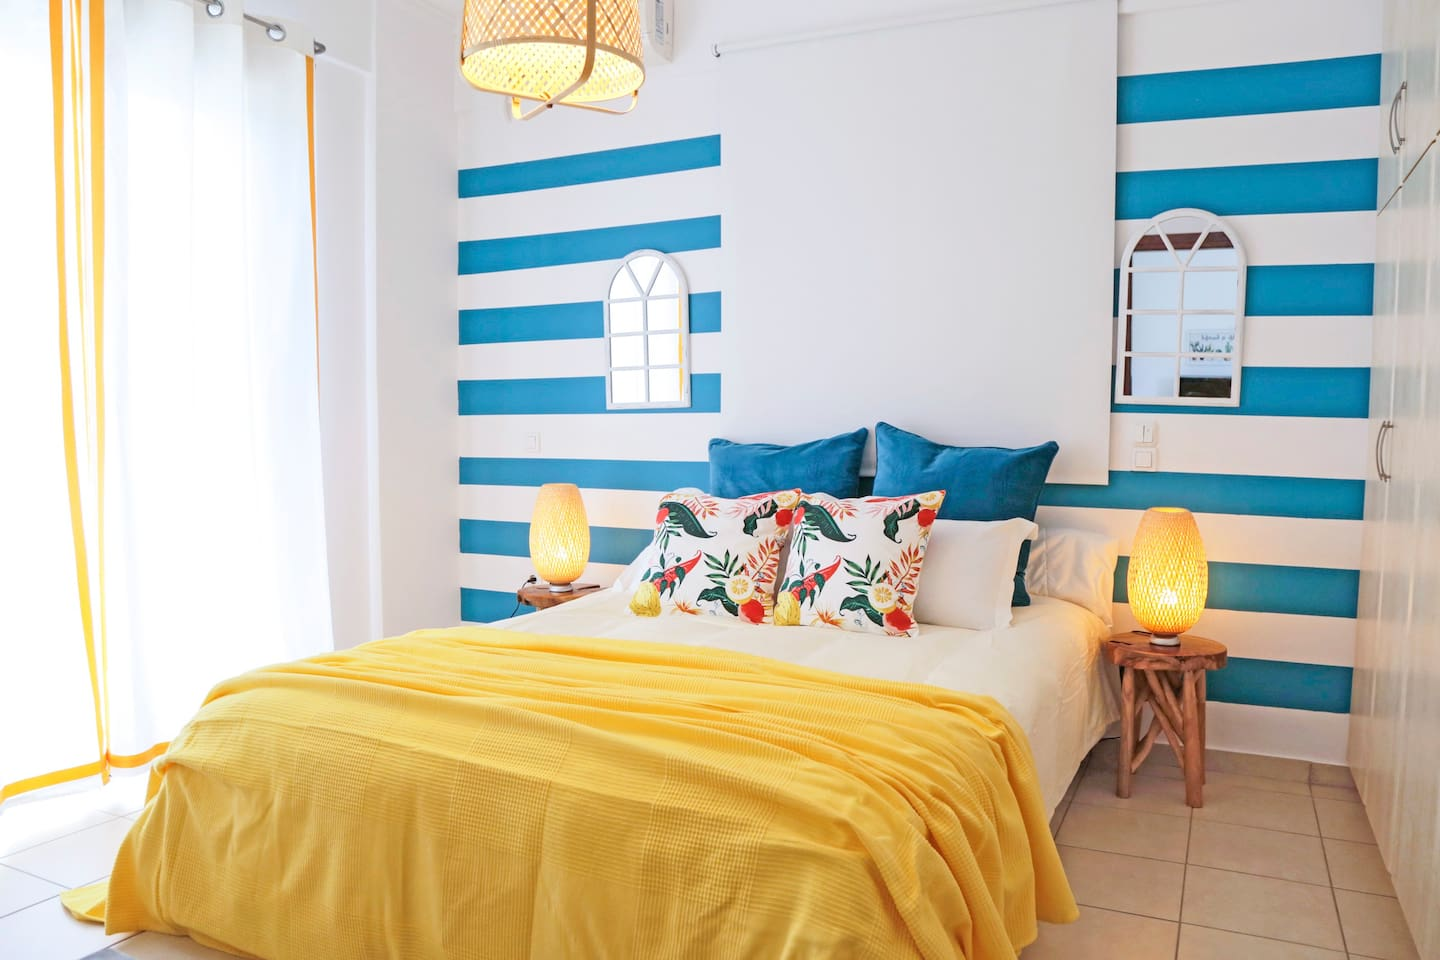 The bedroom has an exotic style with colors of the white and blue palette.